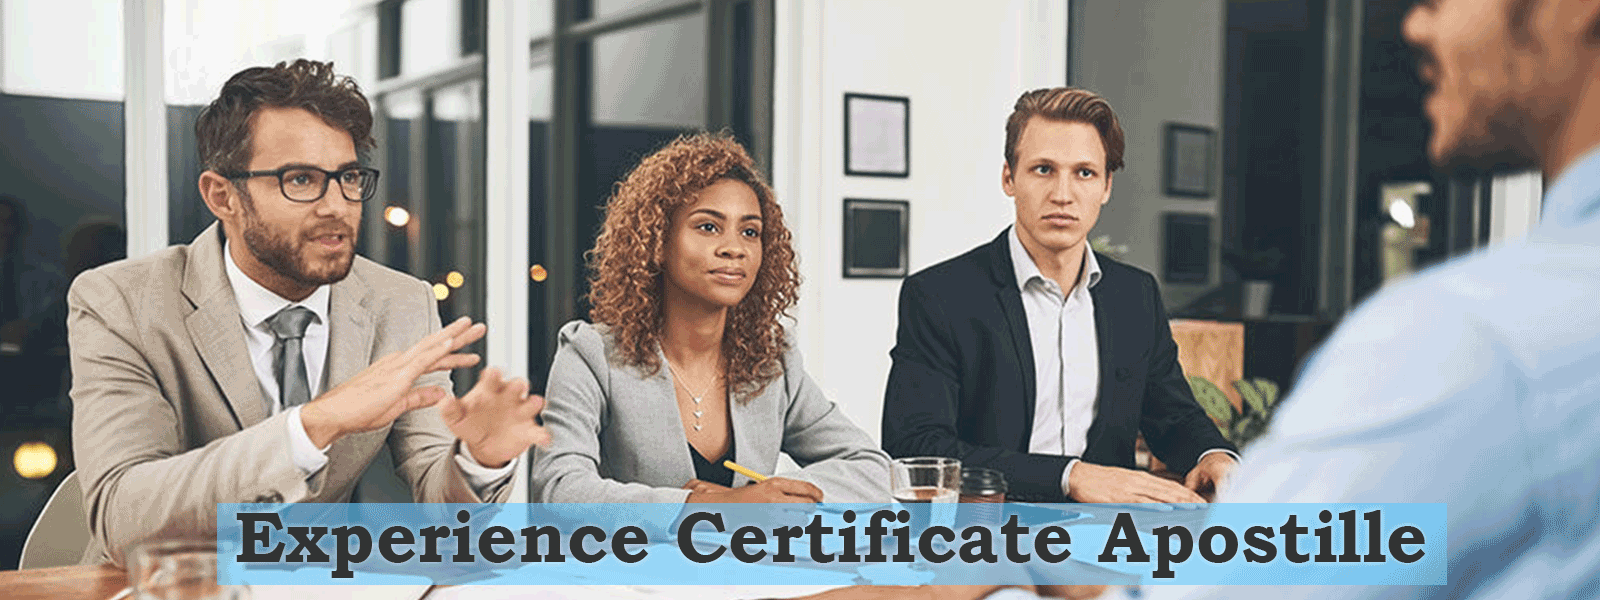 EXPERIENCE CERTIFICATE APOSTILLE